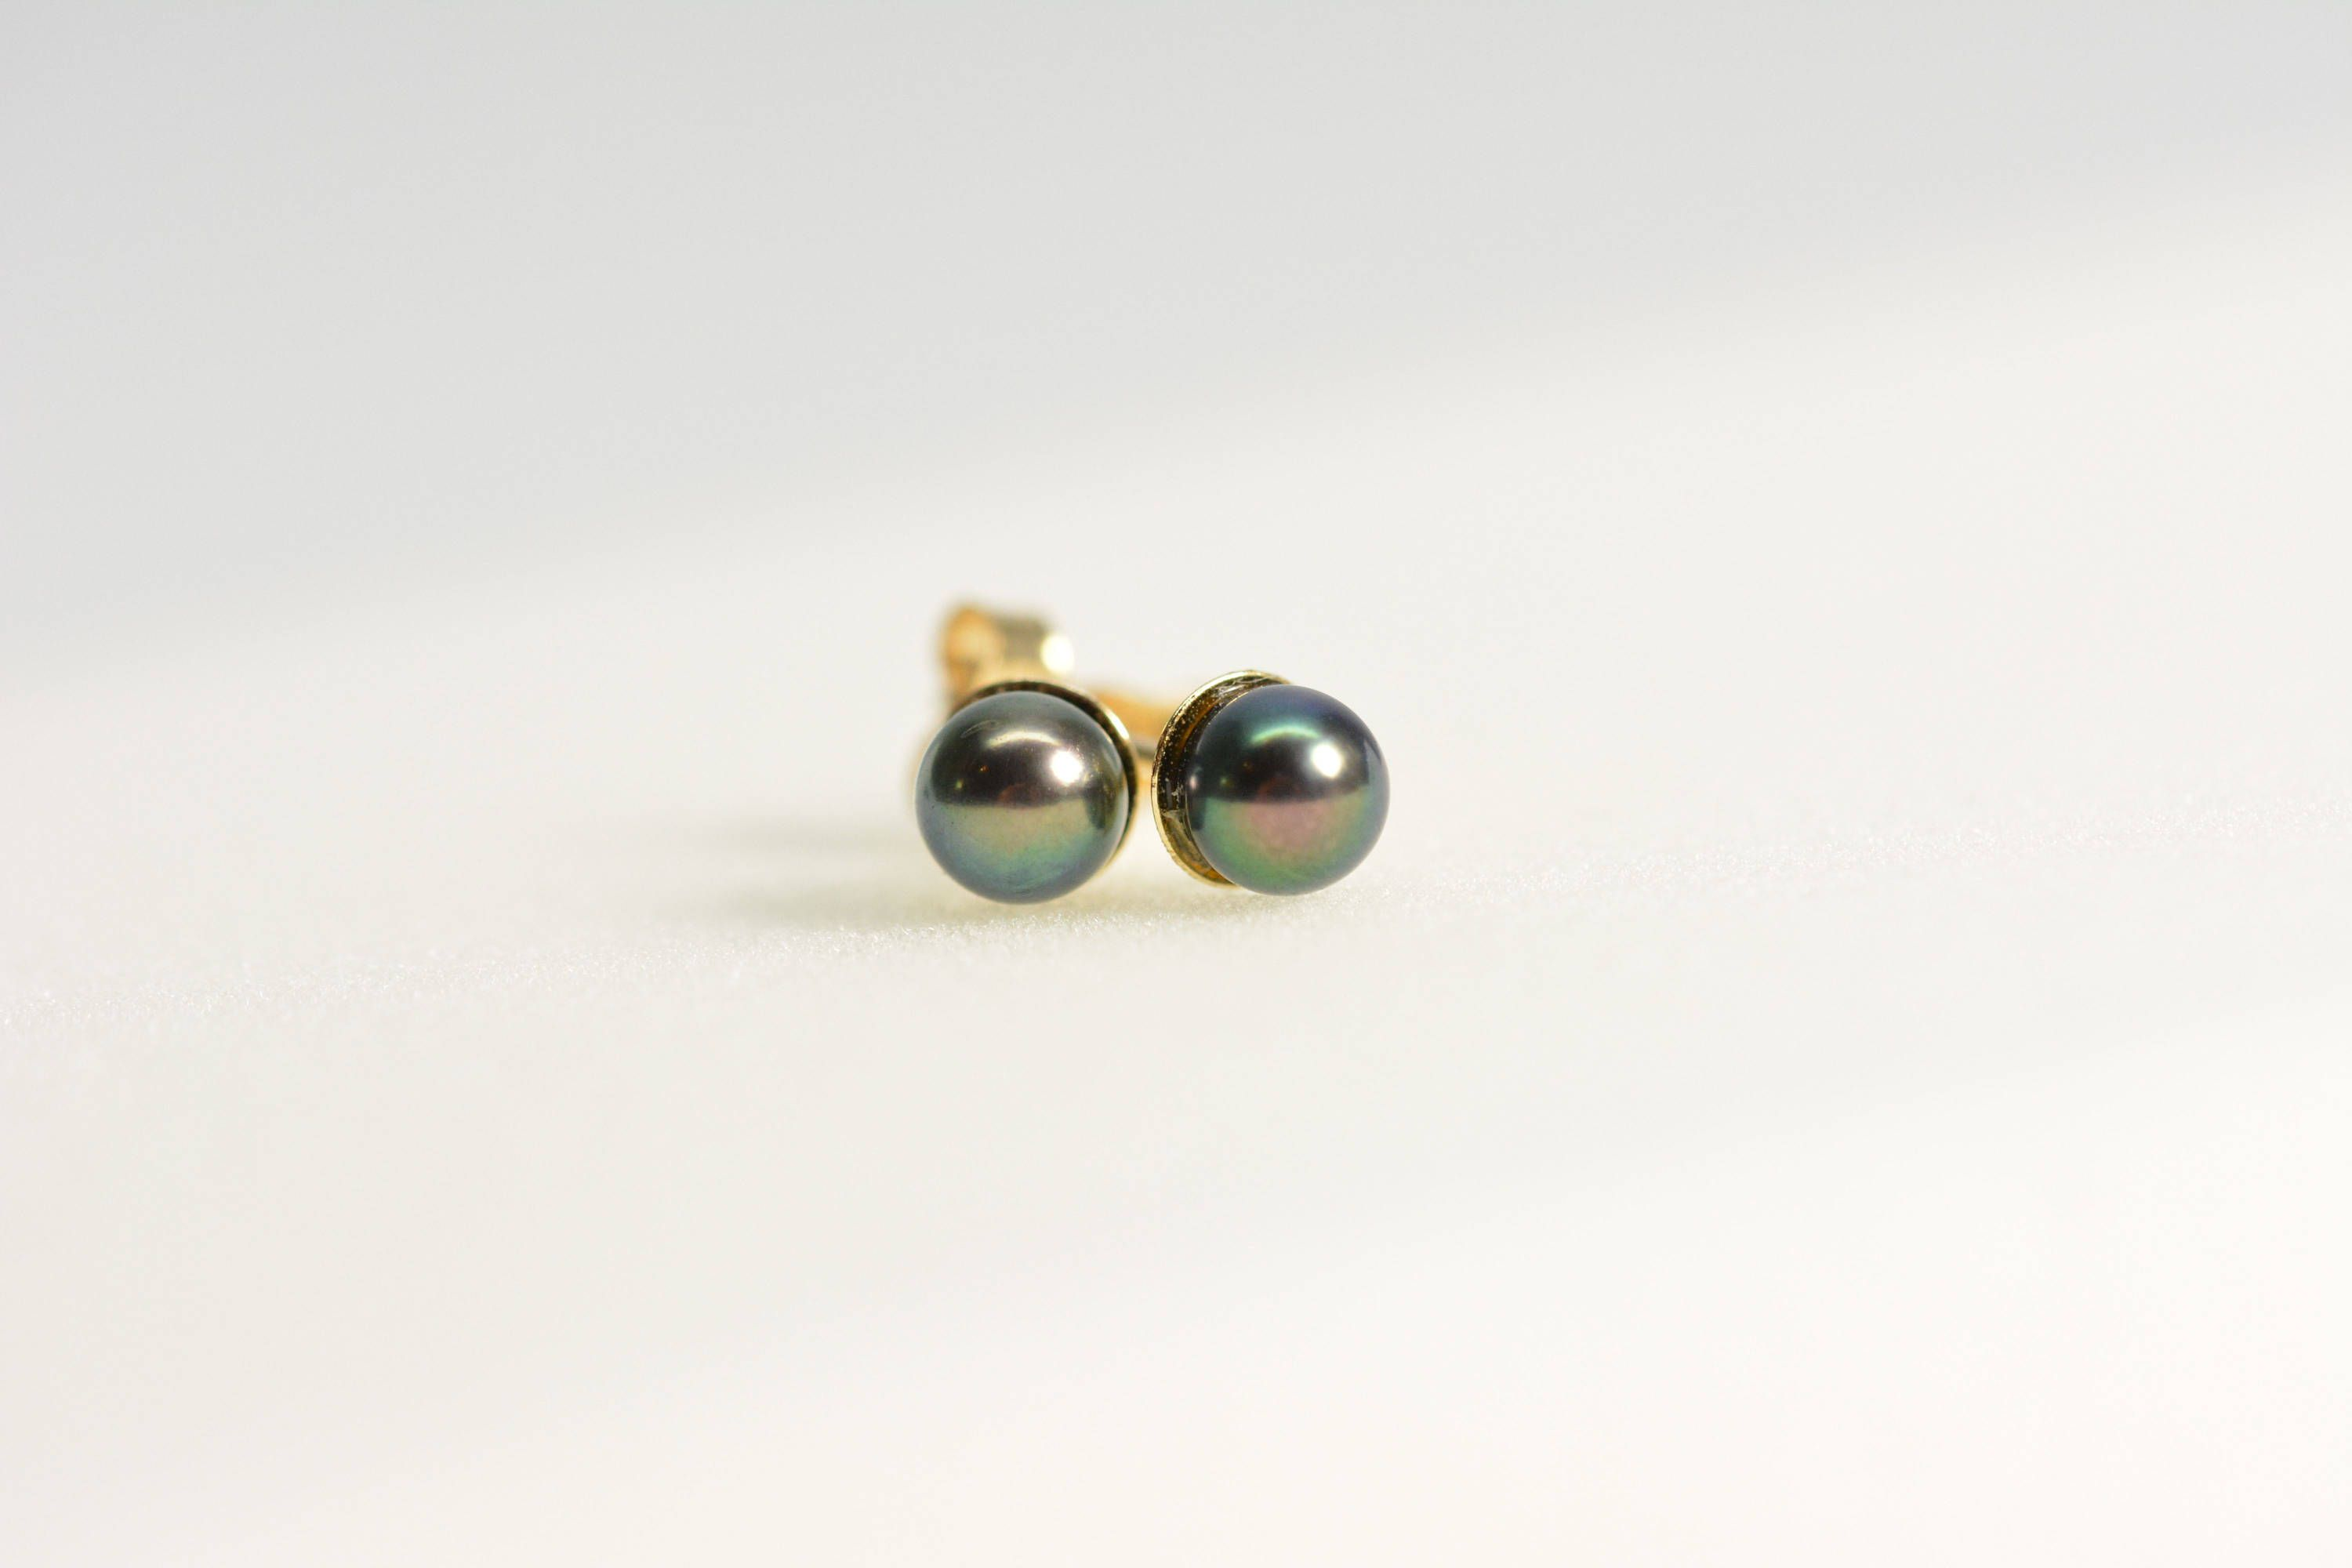 pearls itm earrings studs sided stud gold pearl freshwater double amj